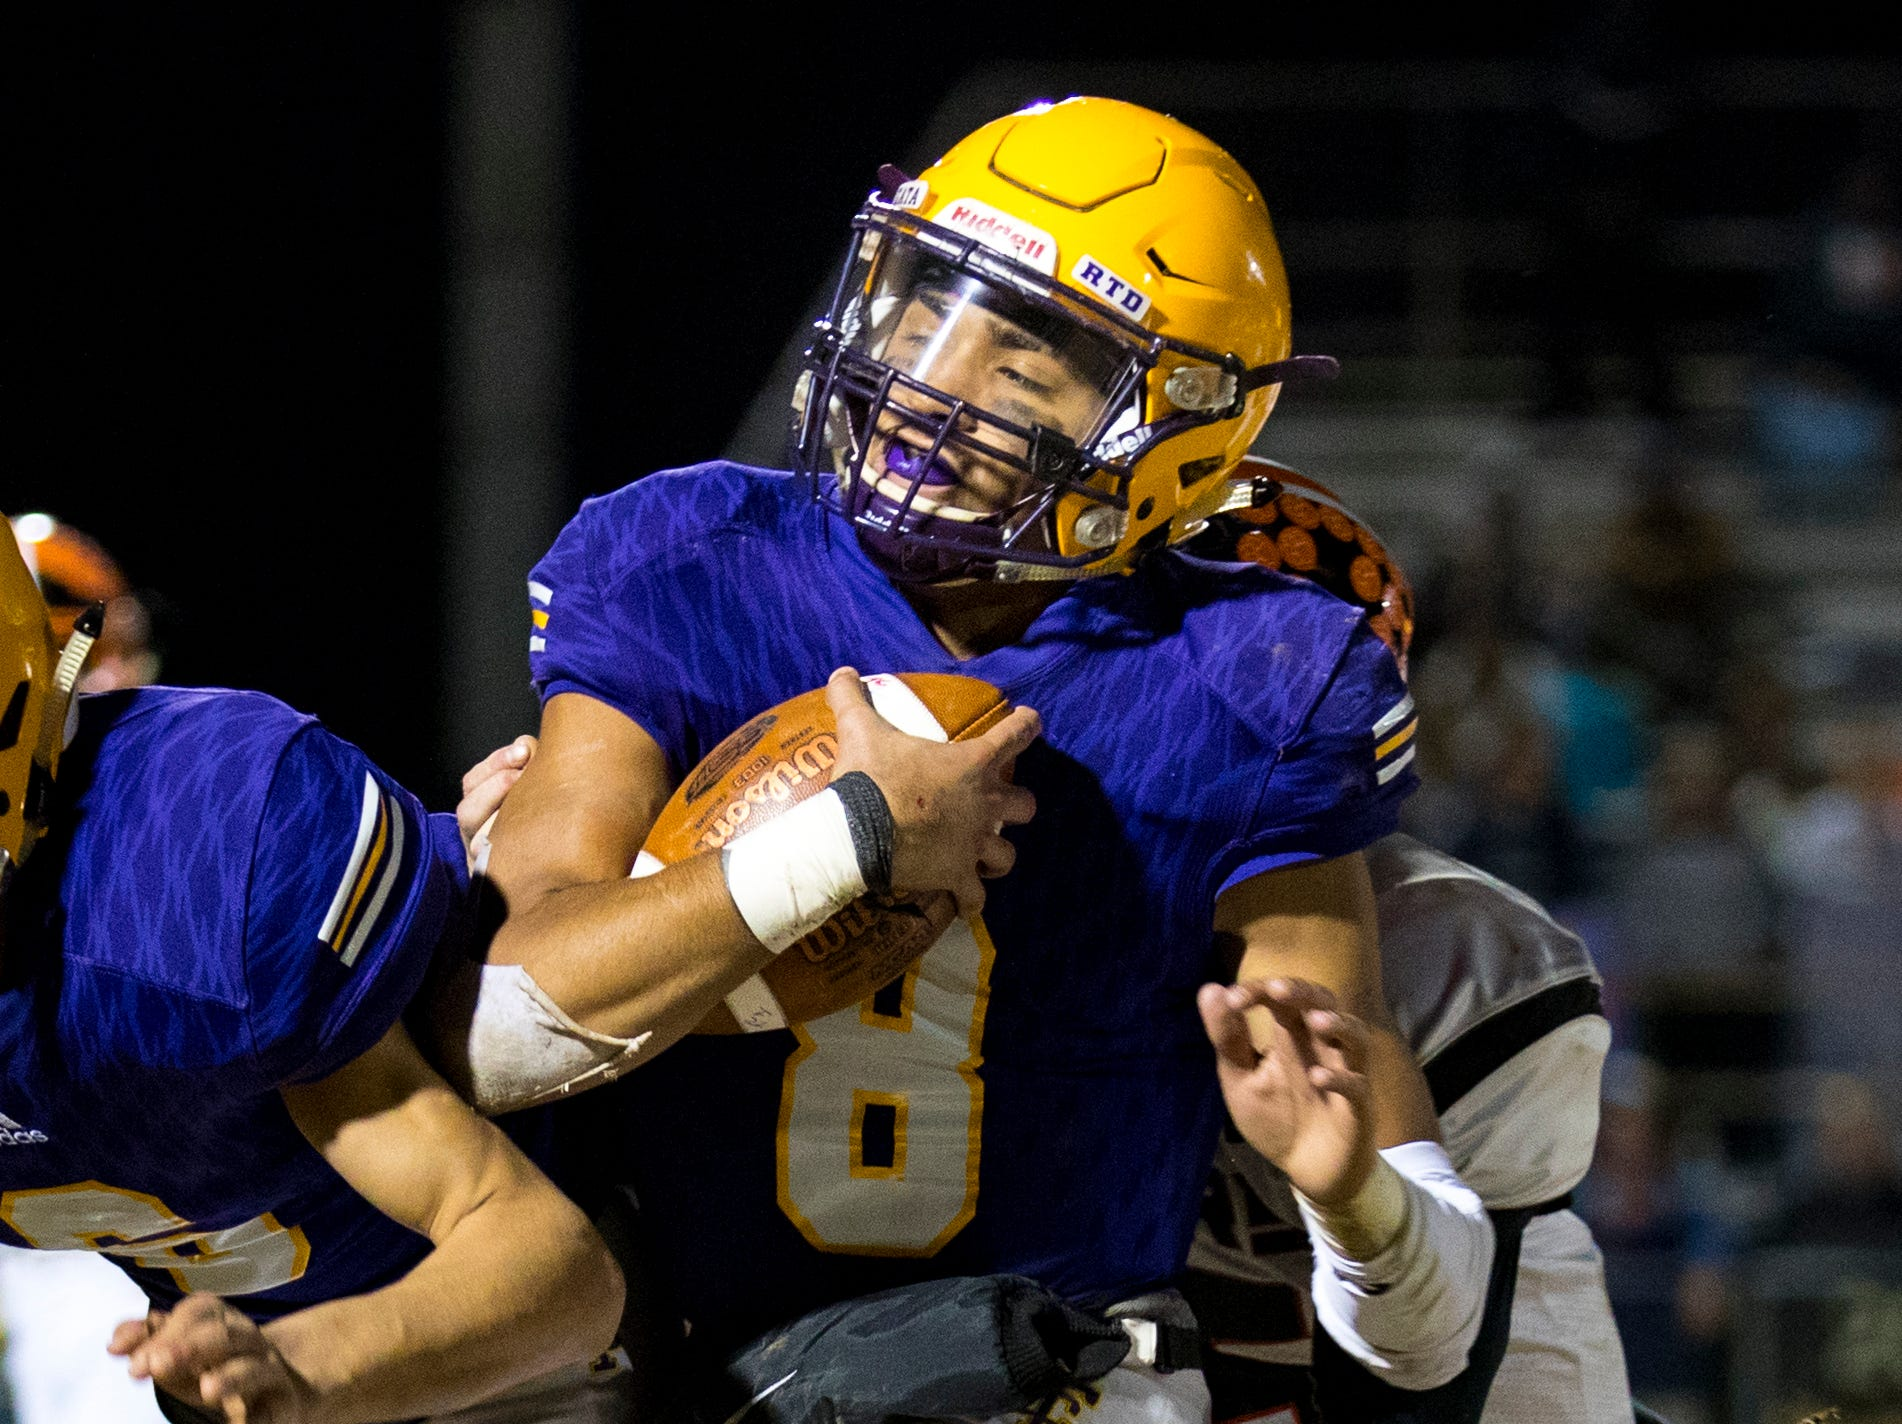 Trousdale County's Keyvont Baines (8) runs the ball during Trousdale County's game against Meigs County at Jim Satterfield Stadium in Hartsville on Friday, Nov. 23, 2018.